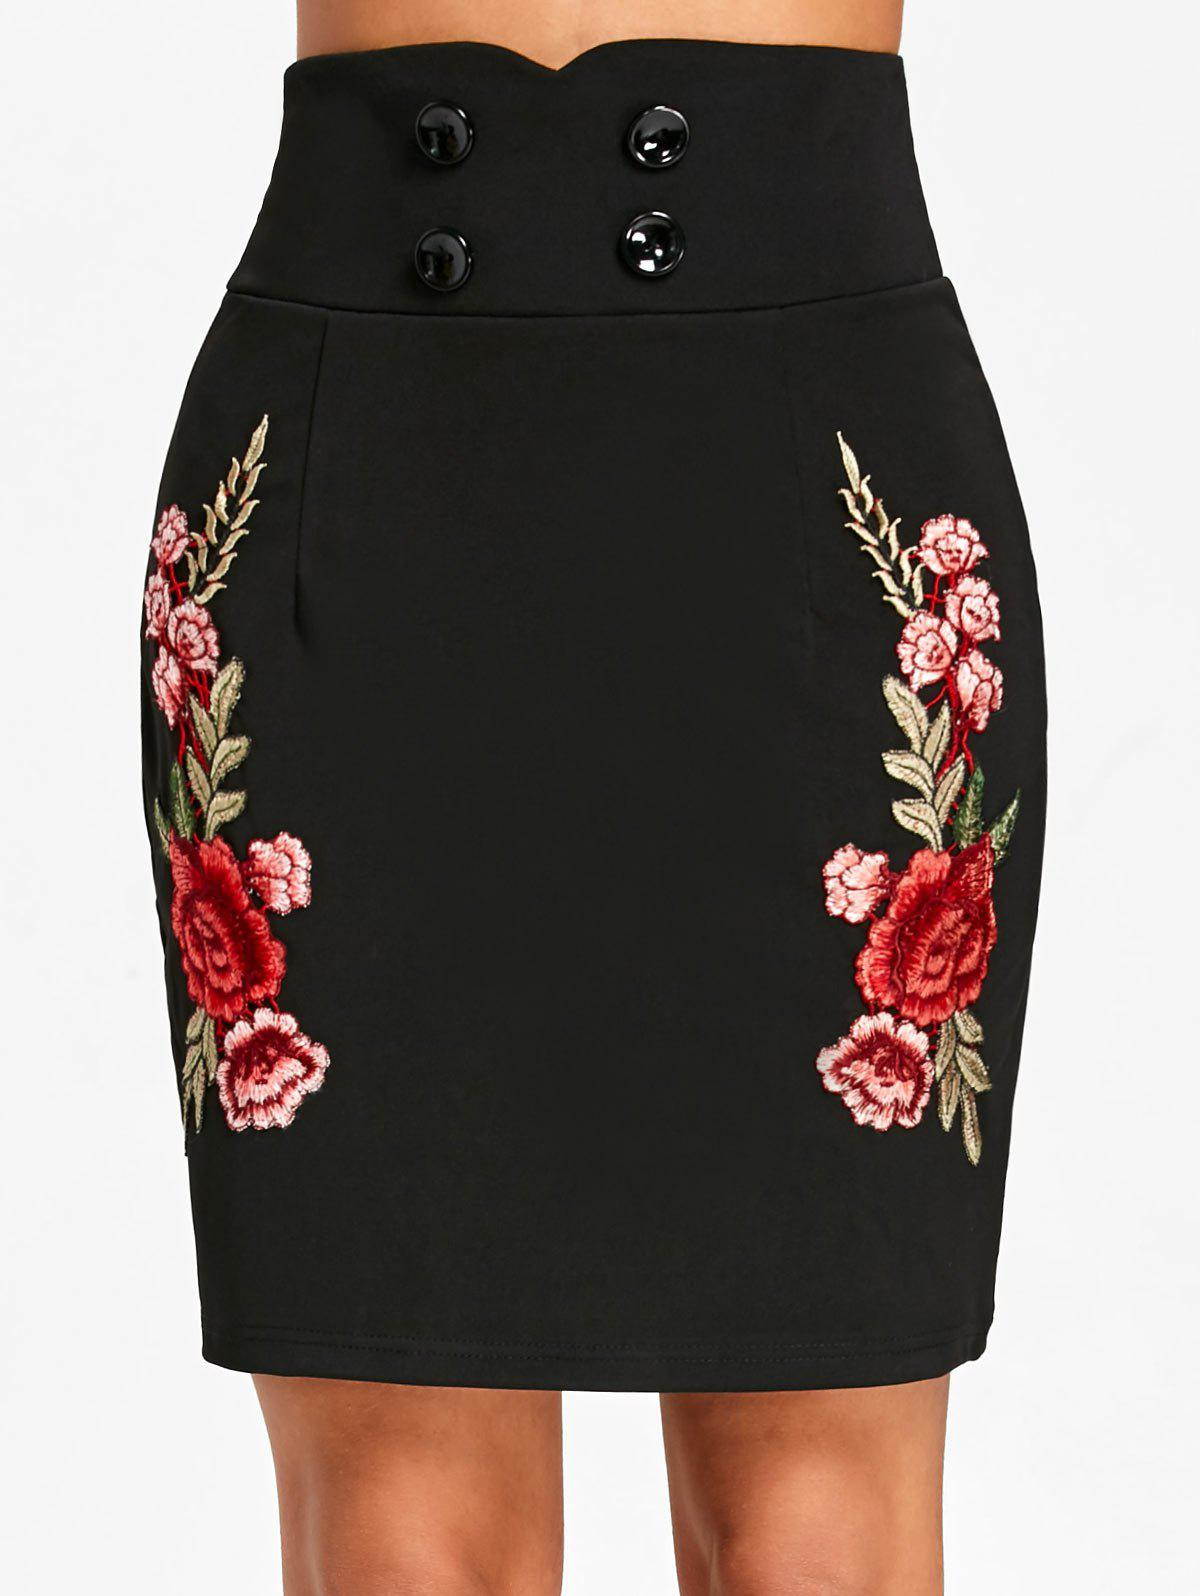 Flower Embroidered Applique High Waist Skirt - BLACK L